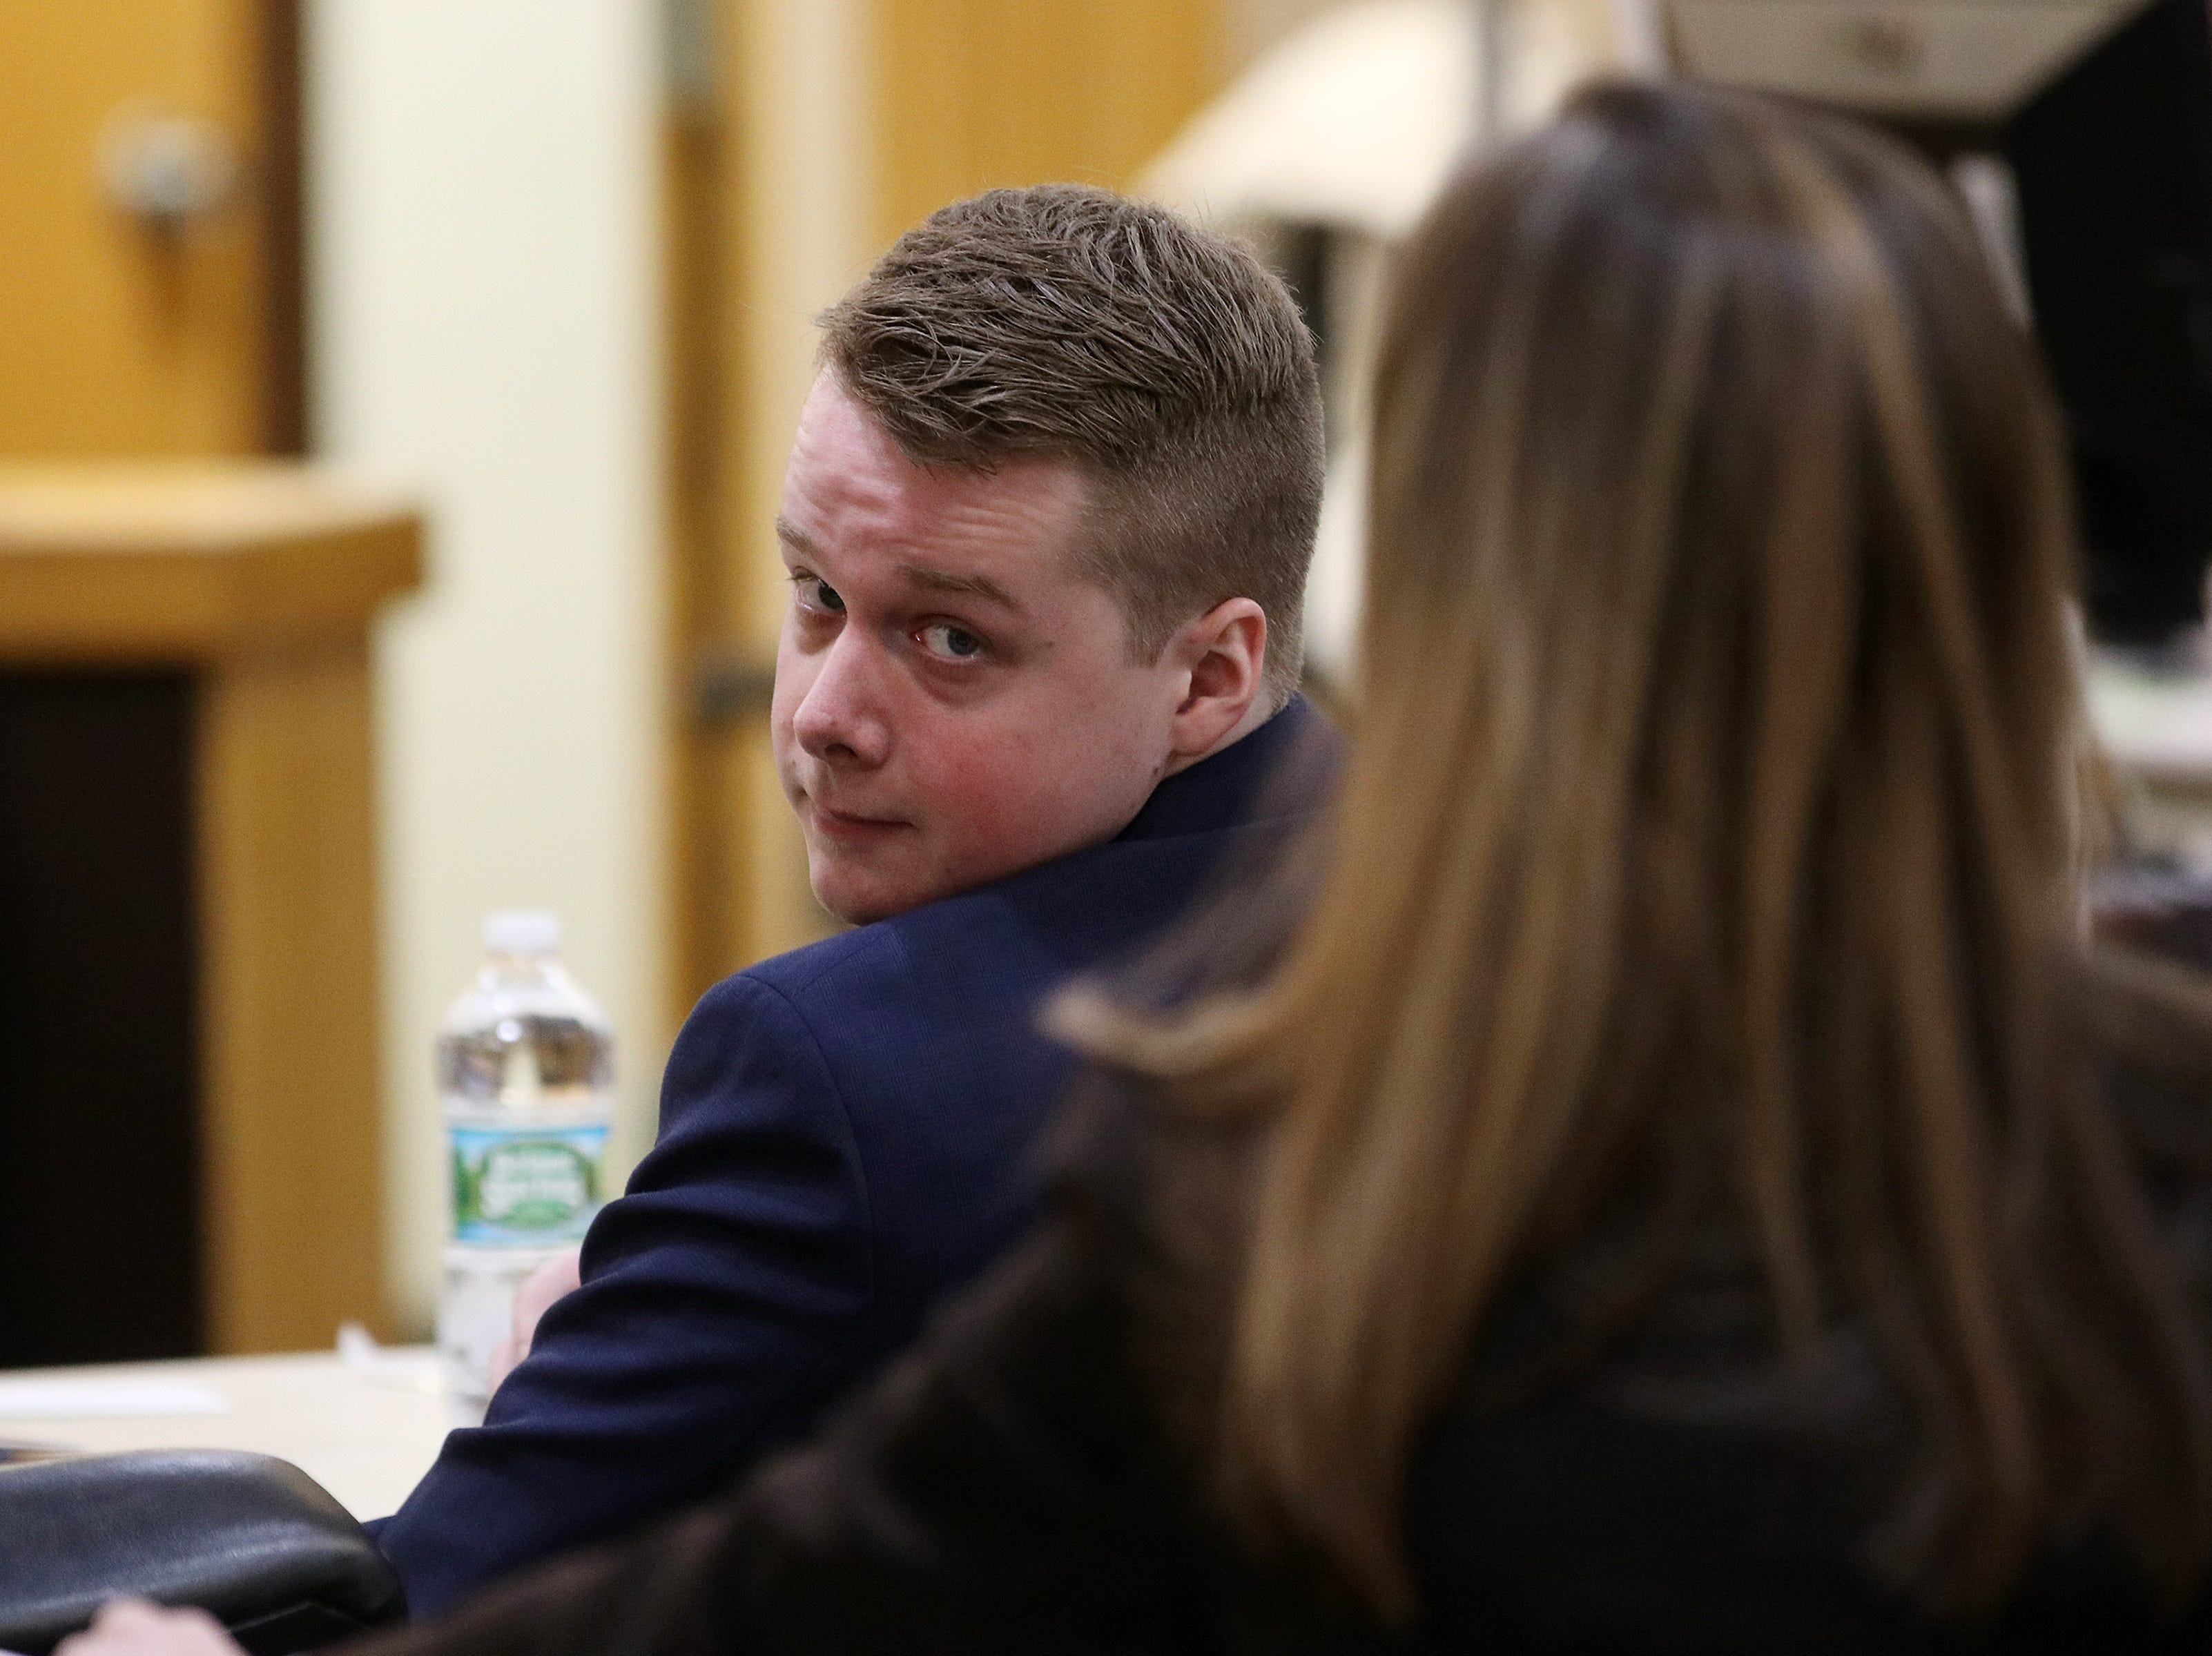 Liam McAtasney, who is charged with the murder of former high school classmate, Sarah Stern, looks back at his family members during the fourth day of trial before Superior Court Judge Richard W. English at the Monmouth County Courthouse in Freehold, NJ Tuesday January 29, 2019.